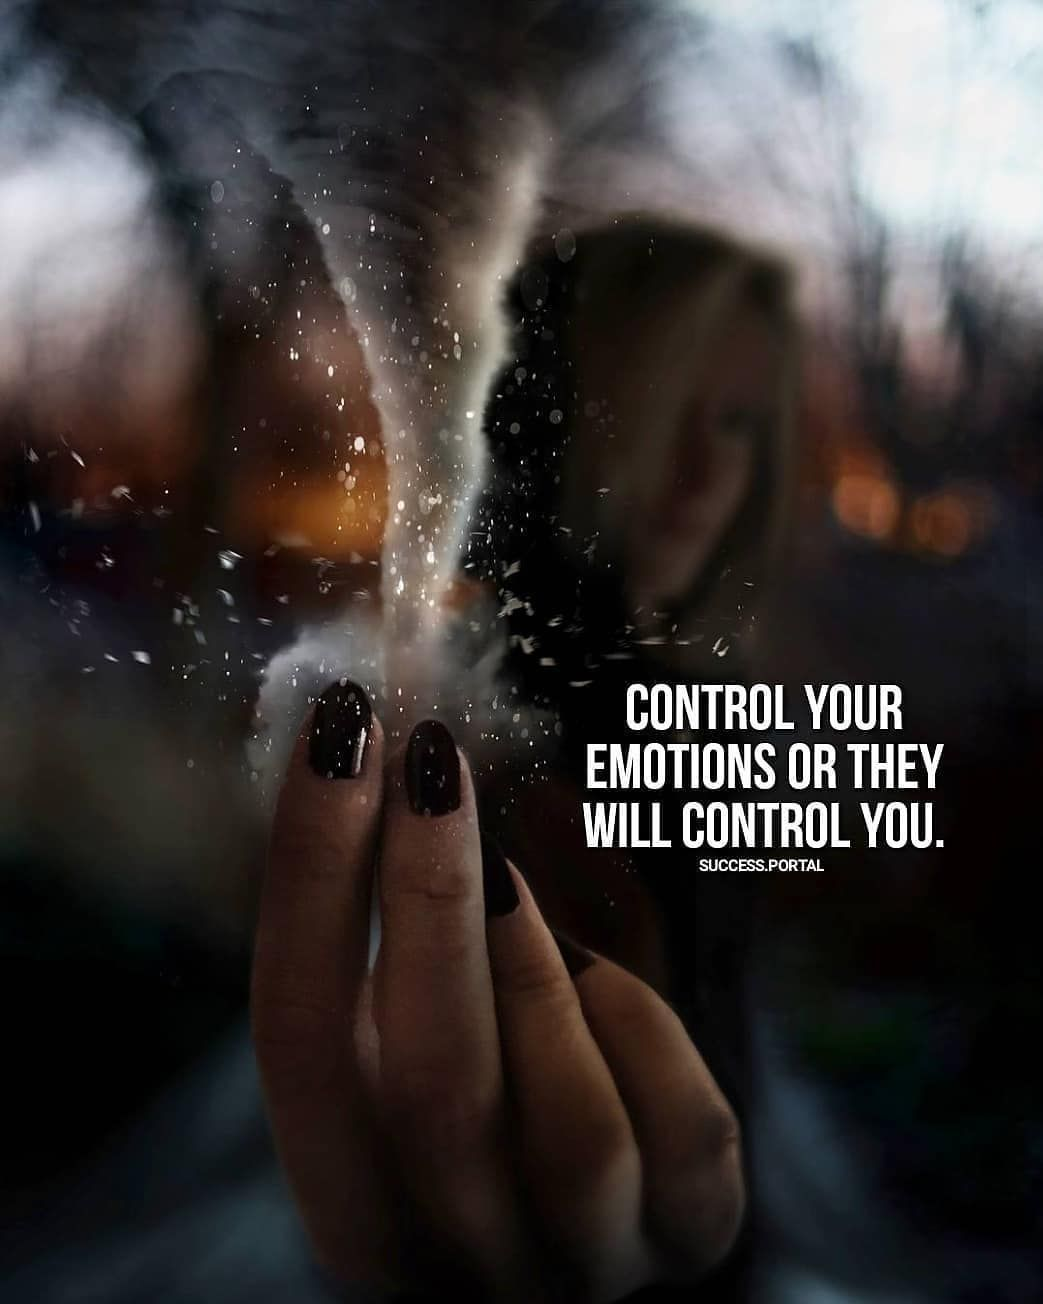 Control Your Emotions Or They Will Control You Life Quotes Quotes Quote Life Emotions Life Quotes An Motivational Quotes For Students Quotes For Students Words